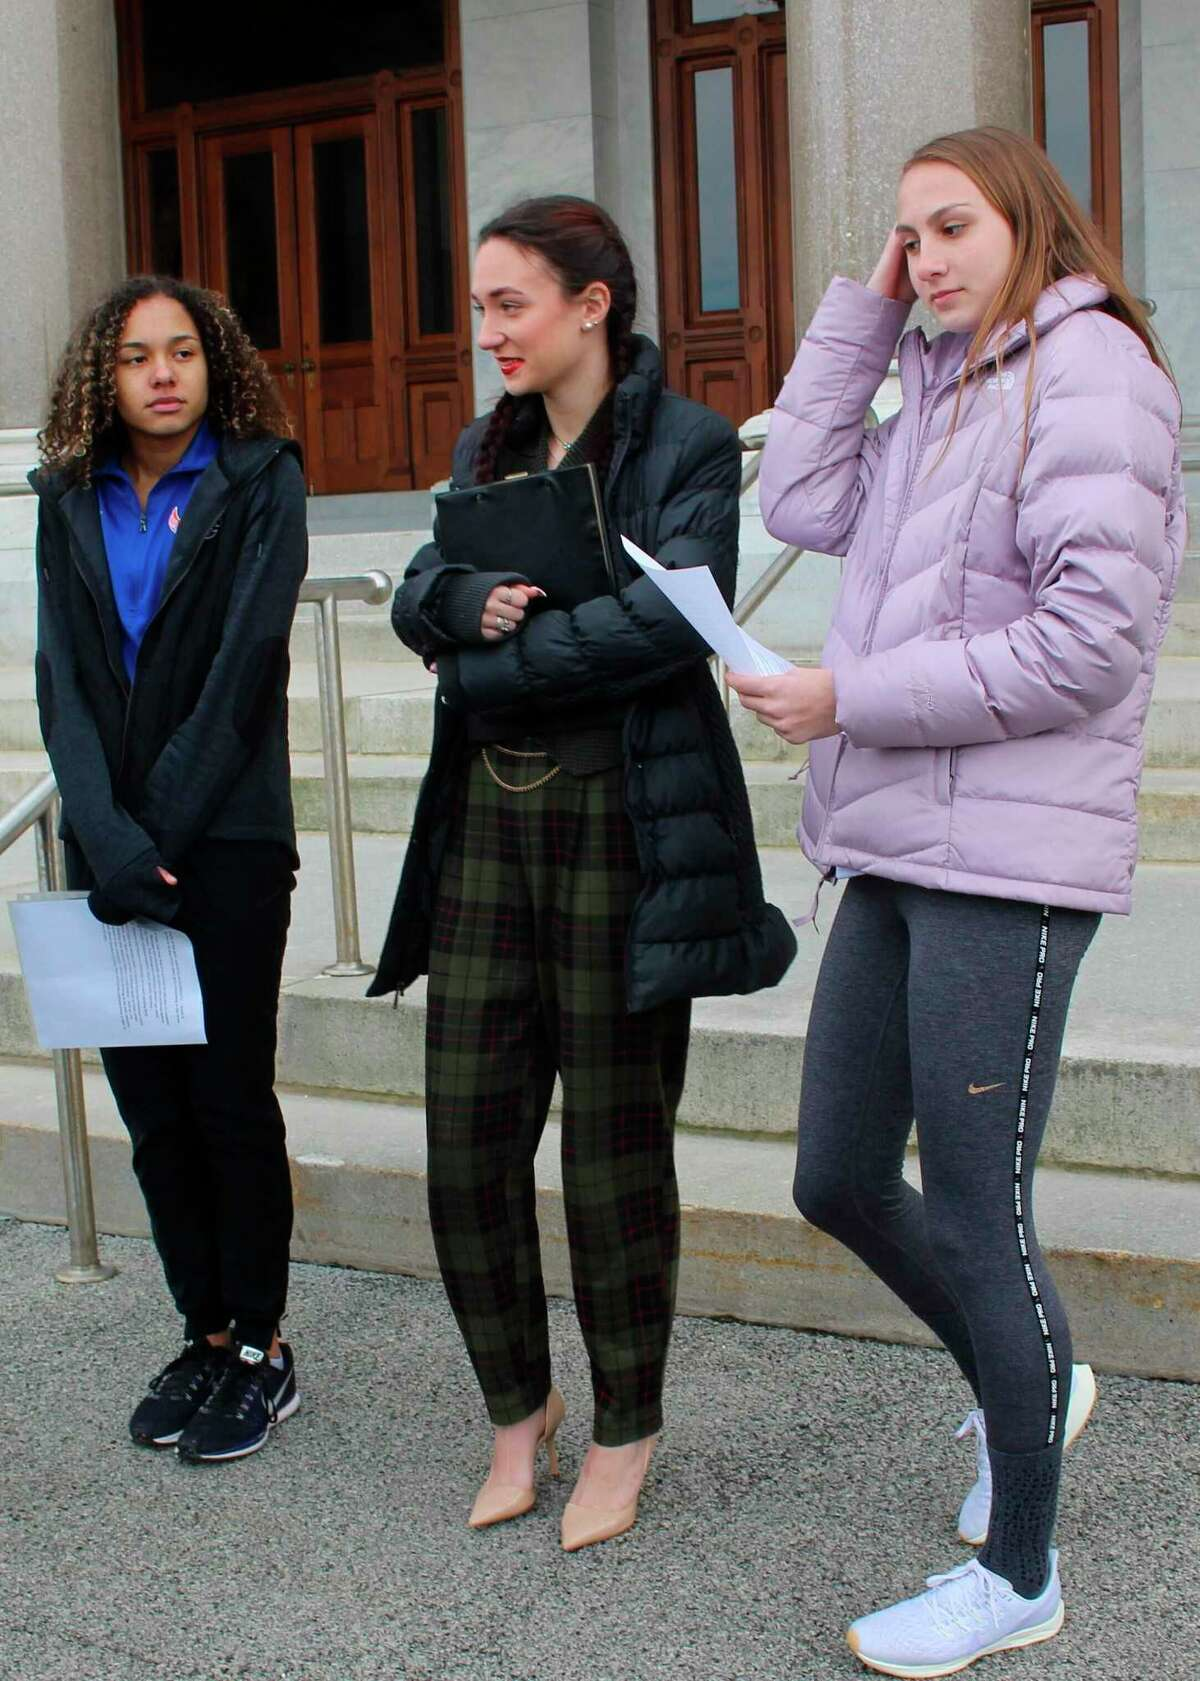 High school track athletes Alanna Smith, left, Selina Soule, center and and Chelsea Mitchell during a recent appearance at the State Capitol. They have filed a federal lawsuit to block a state policy that allows transgender athletes to compete in girls sports.